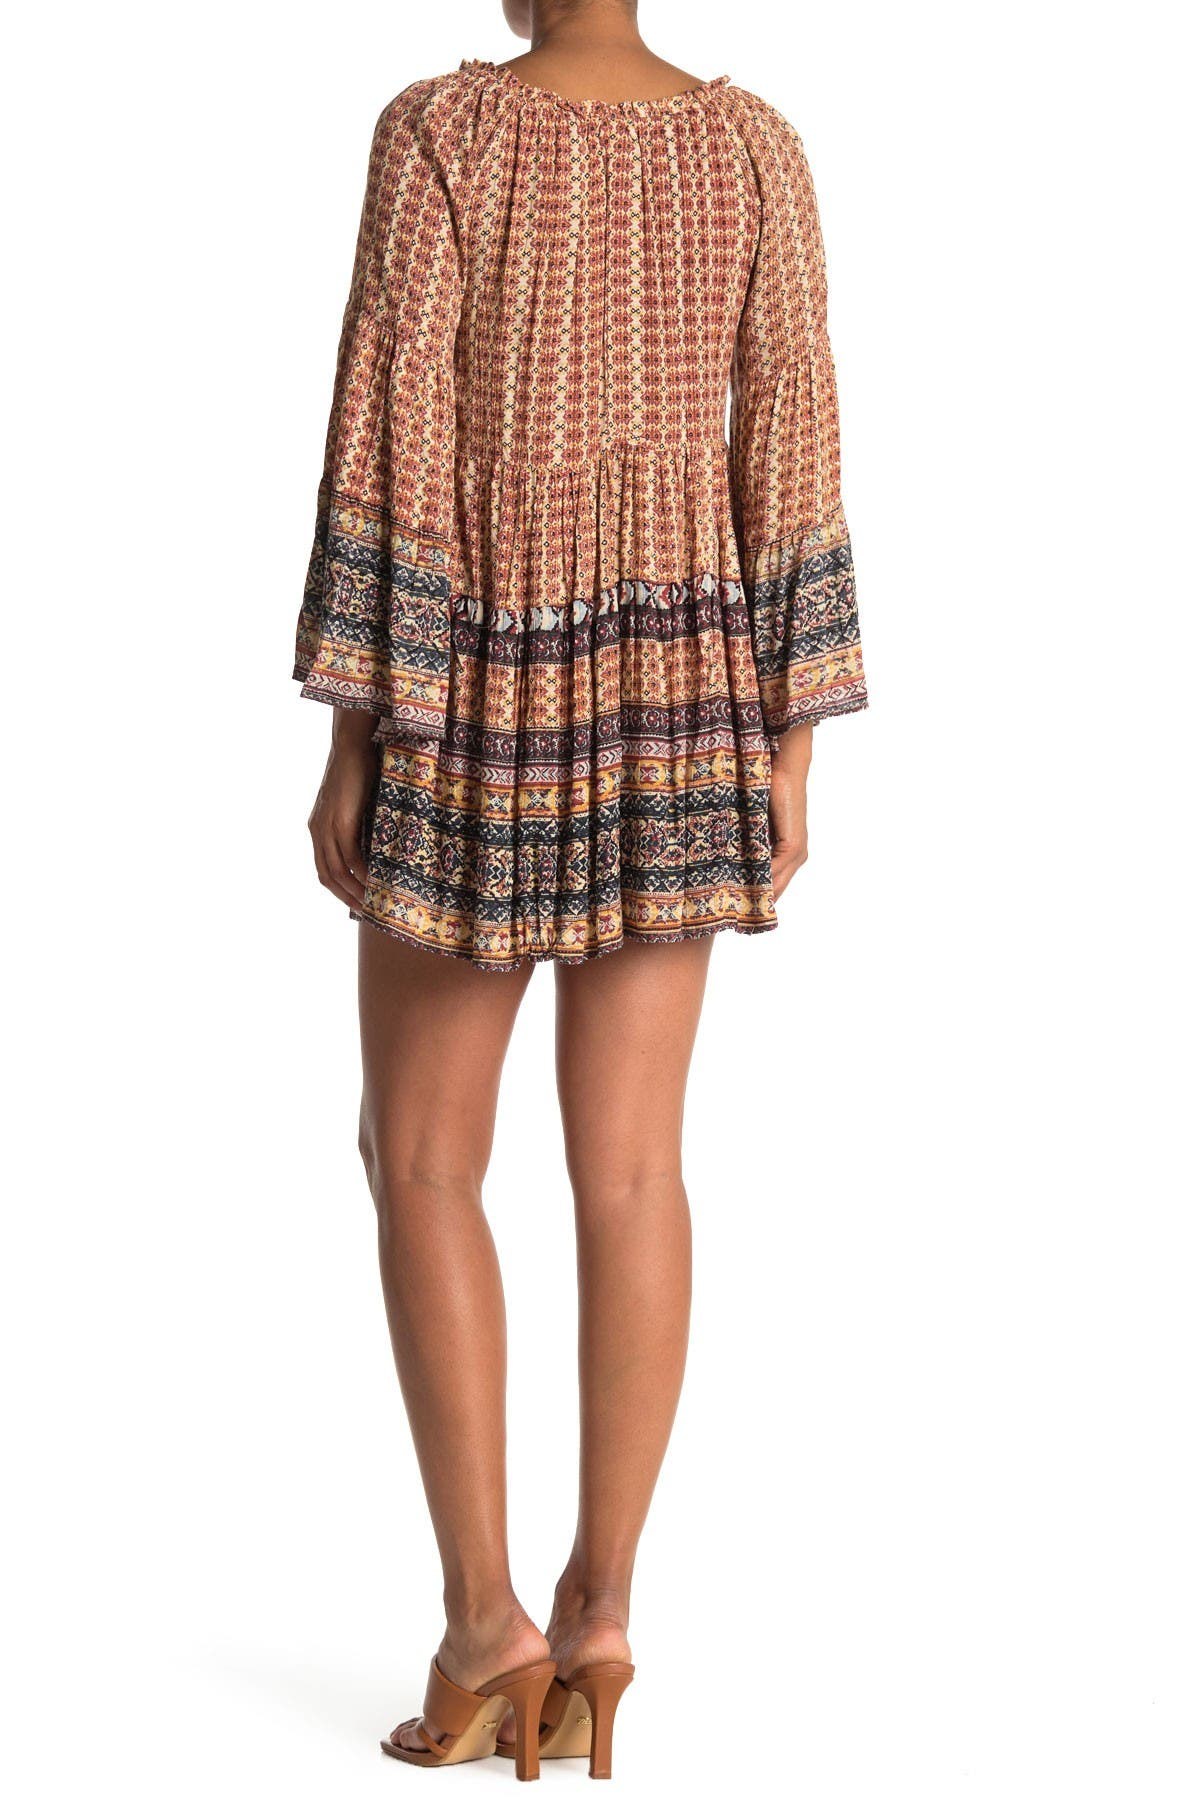 Image of Angie Long Bell Sleeve Patterned Tiered Dress